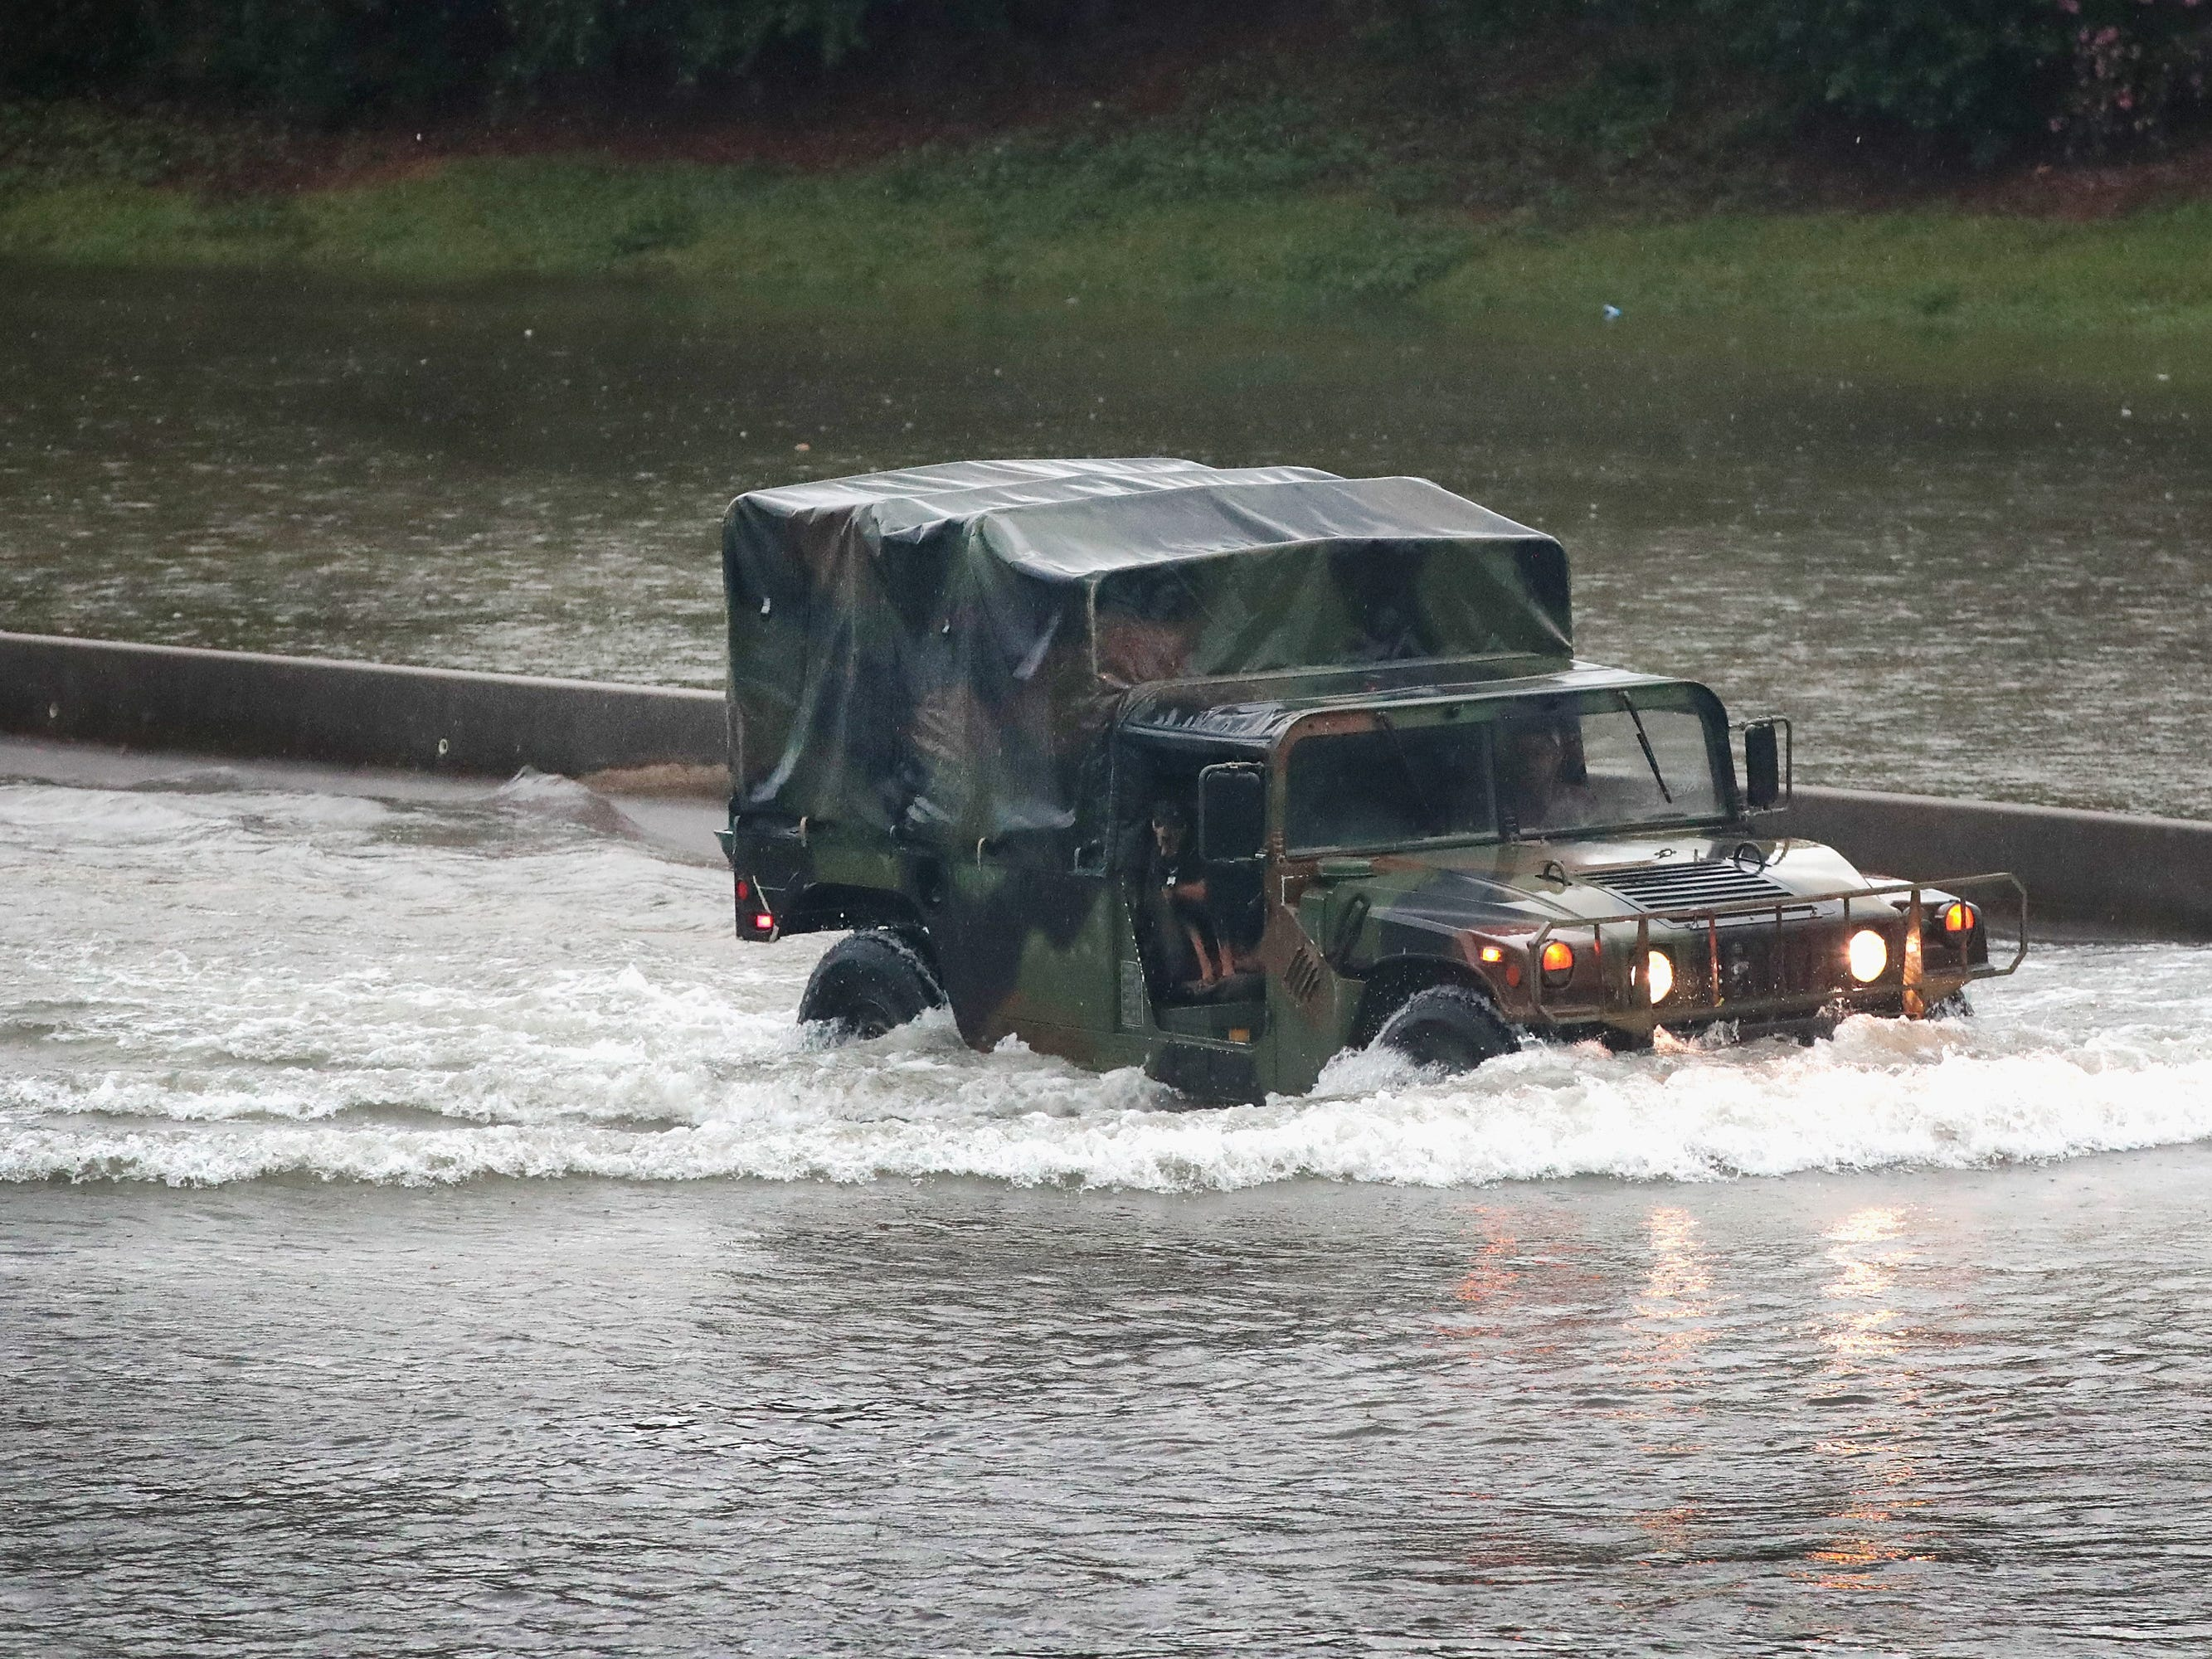 A military truck navigates along Interstate 10 which has been inundated with flooding from Hurricane Harvey on Aug. 27, 2017 in Houston, Texas.